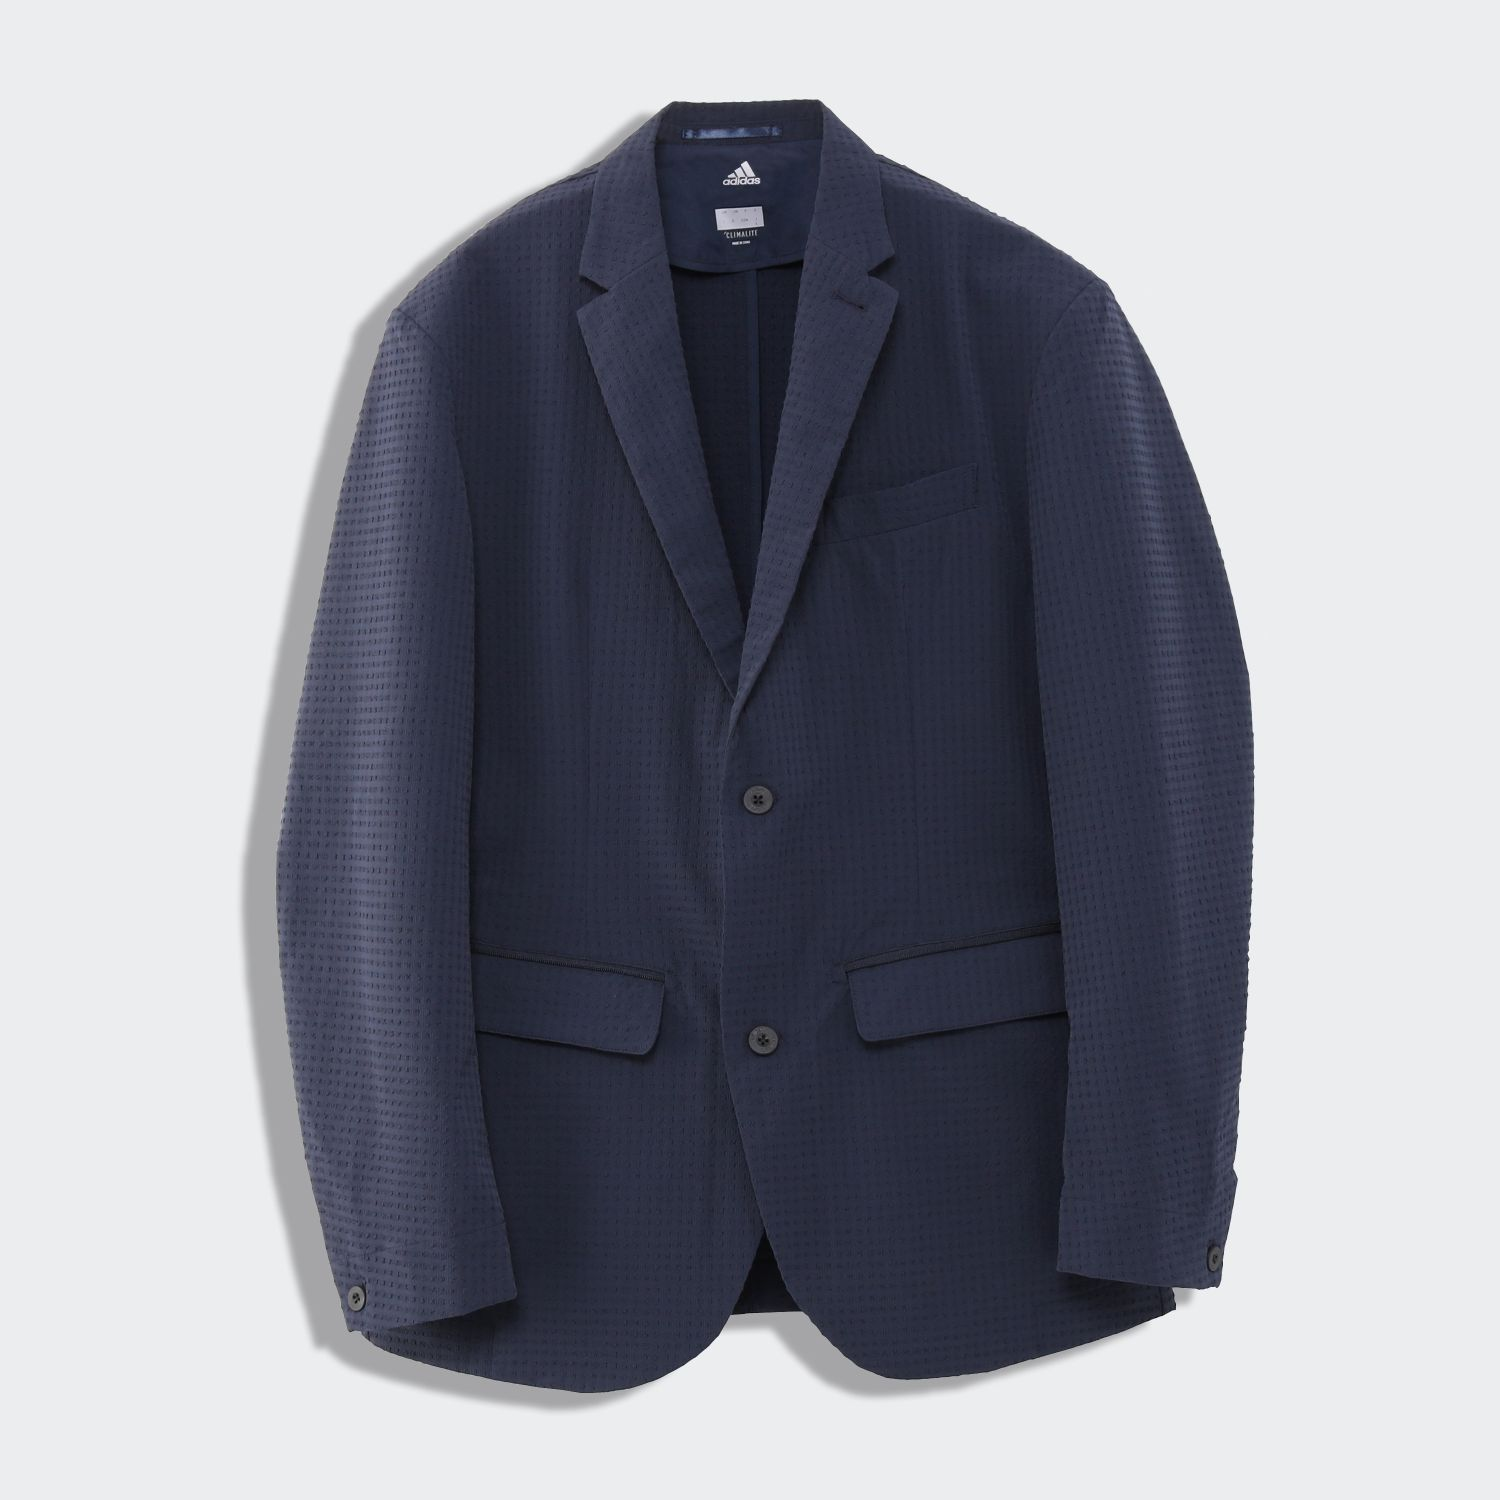 isetan-mens-adidas-icon-suit-6th-model-release-20190429